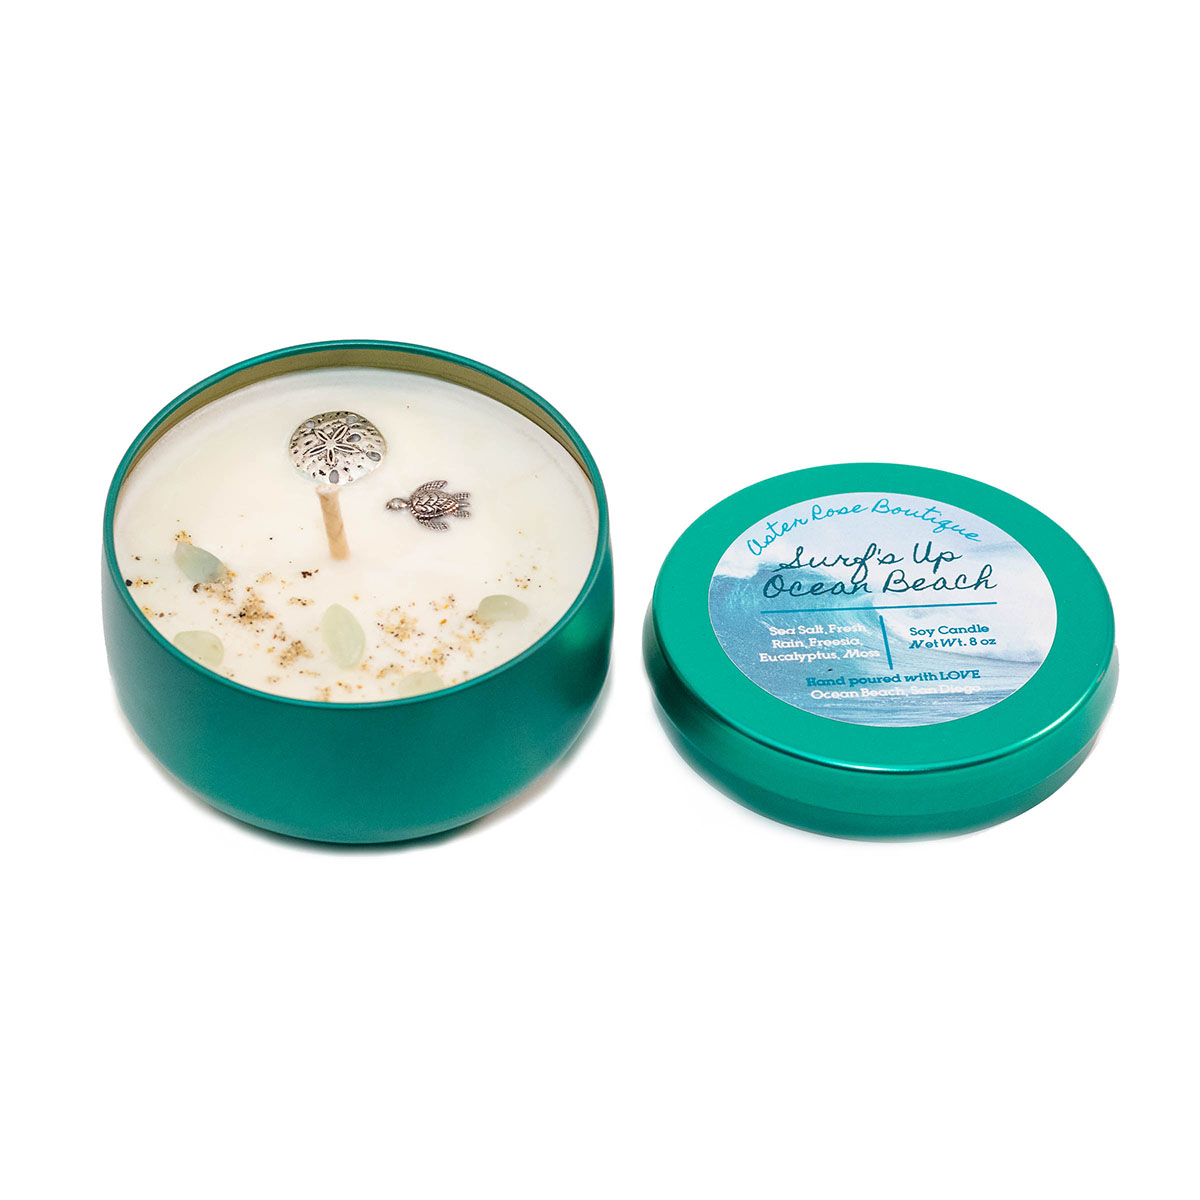 Surf's Up Ocean Beach Soy Candle